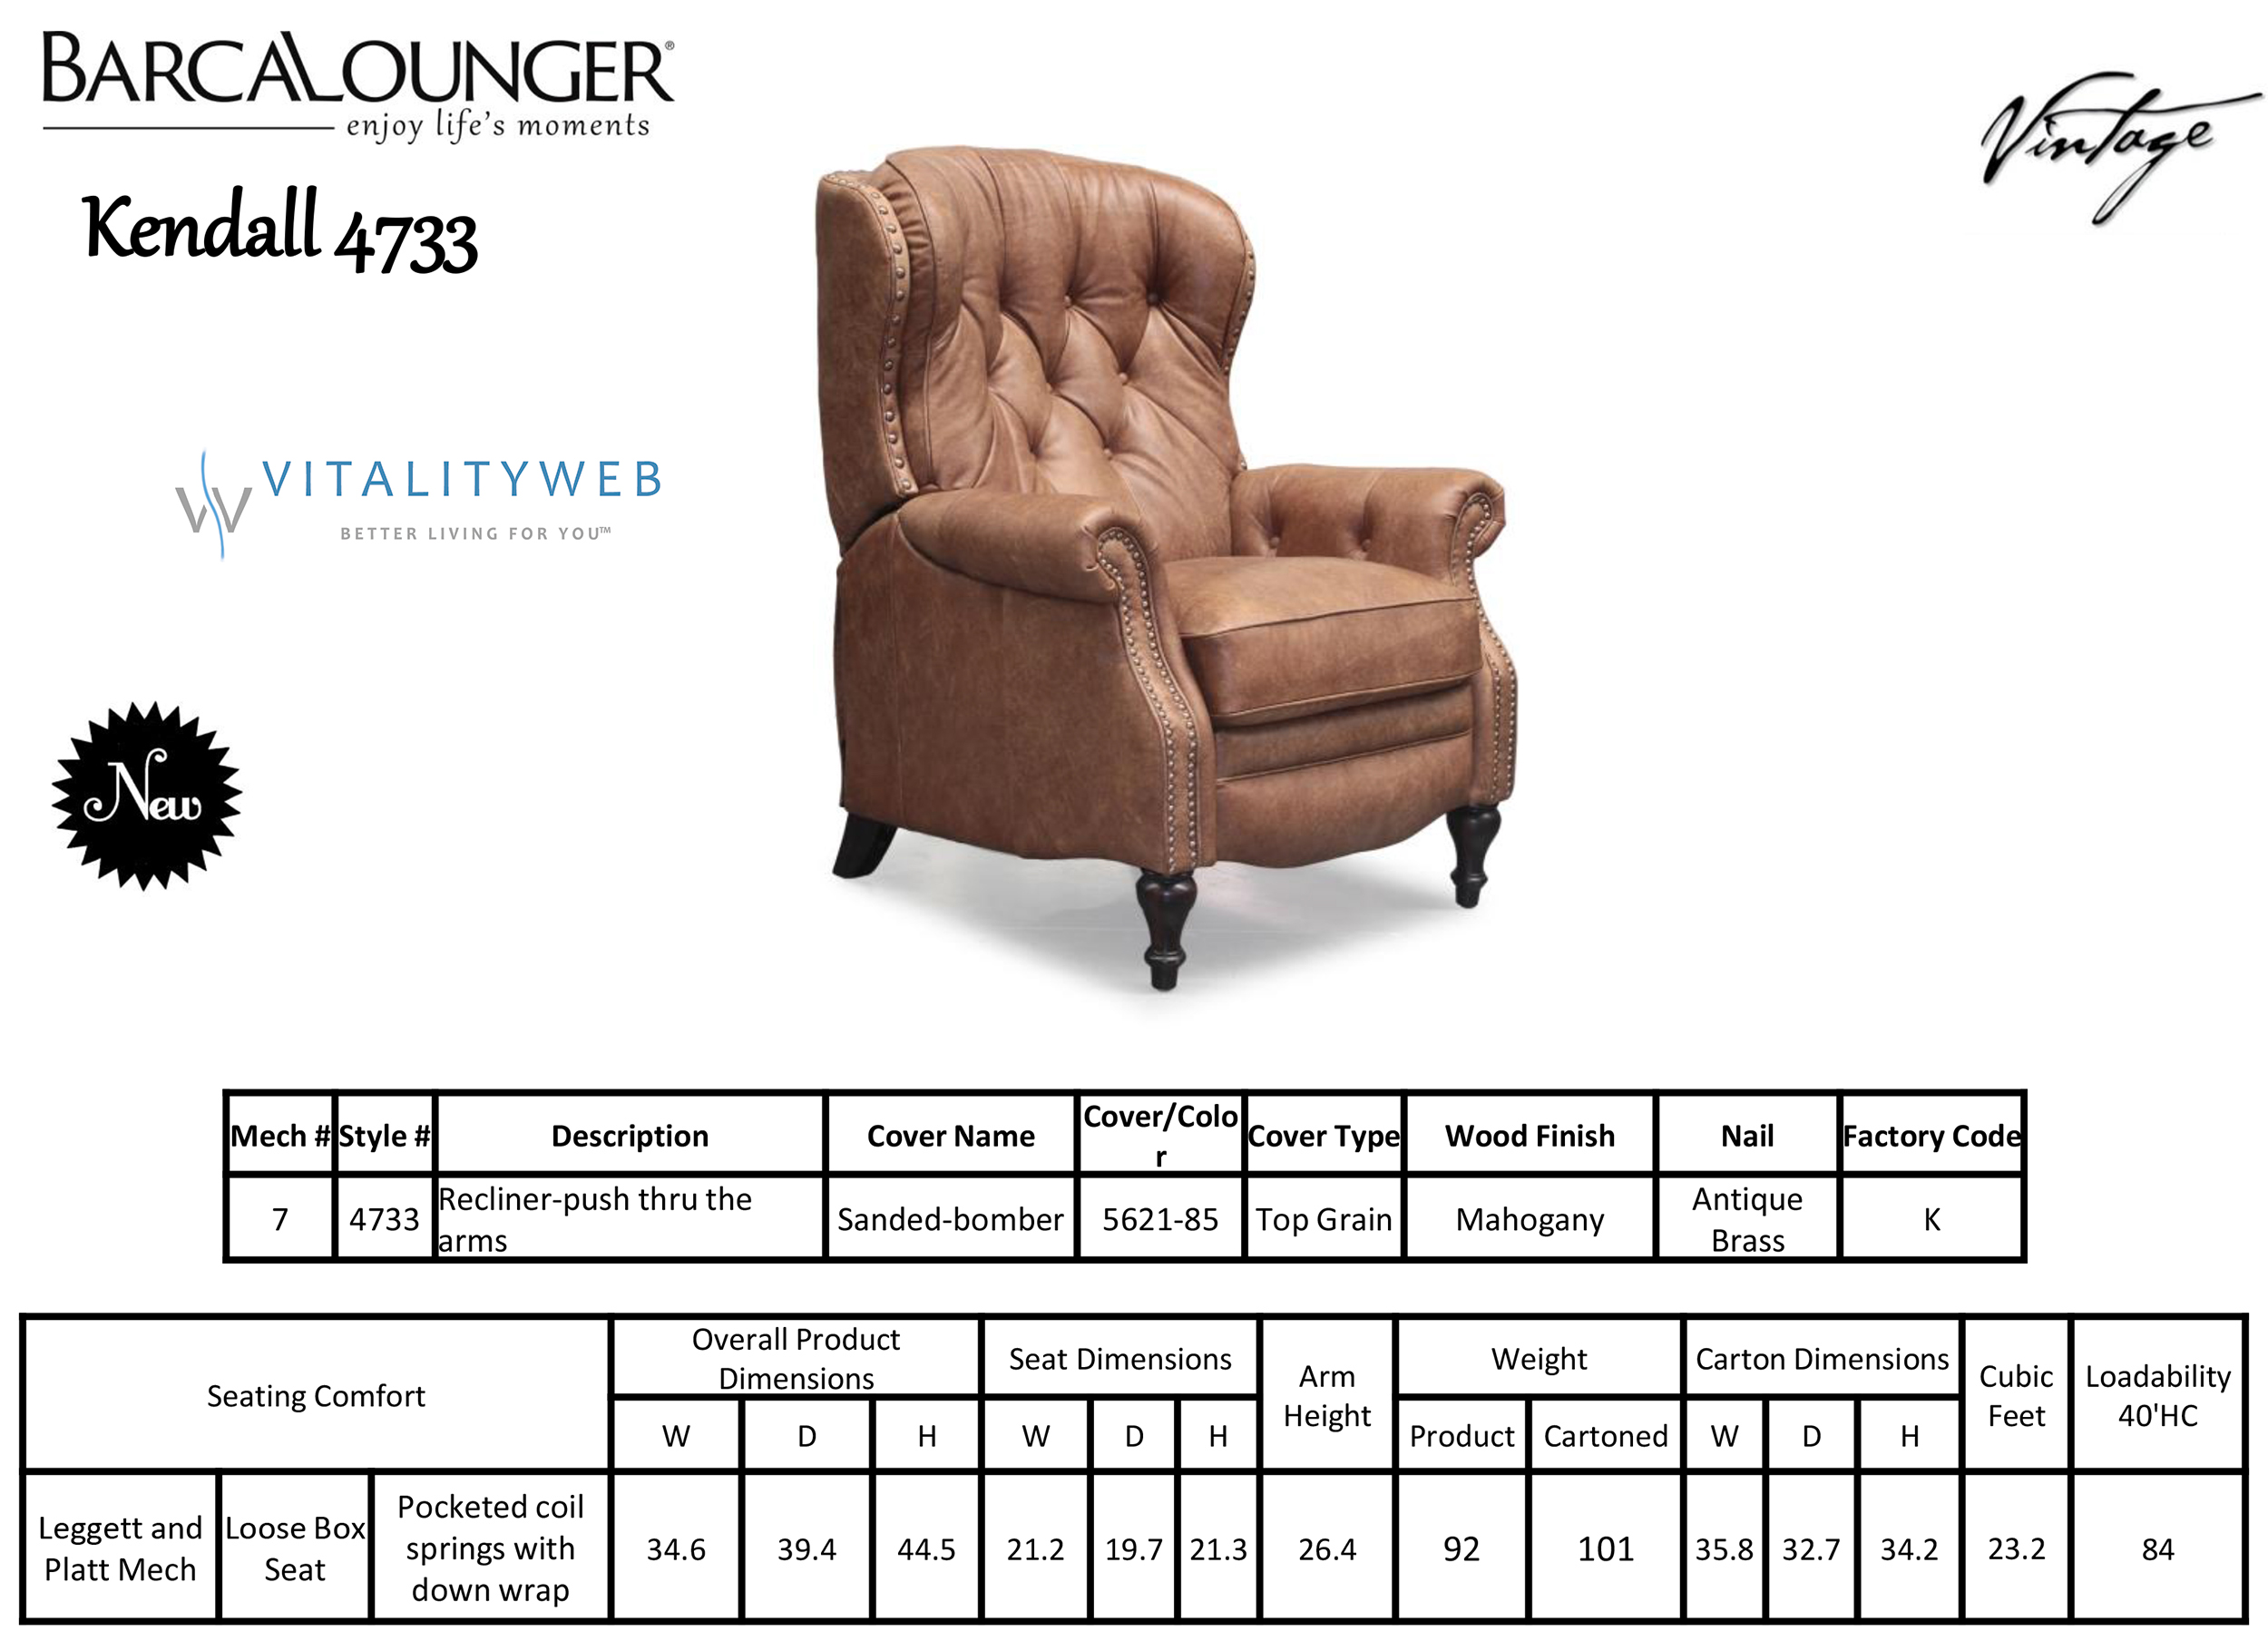 Barcalounger Kendall 4733 Leather Recliner Chair Dimensions  sc 1 st  Vitalitywebb.com & Barcalounger Kendall II Recliner Chair - Leather Recliner Chair ... islam-shia.org